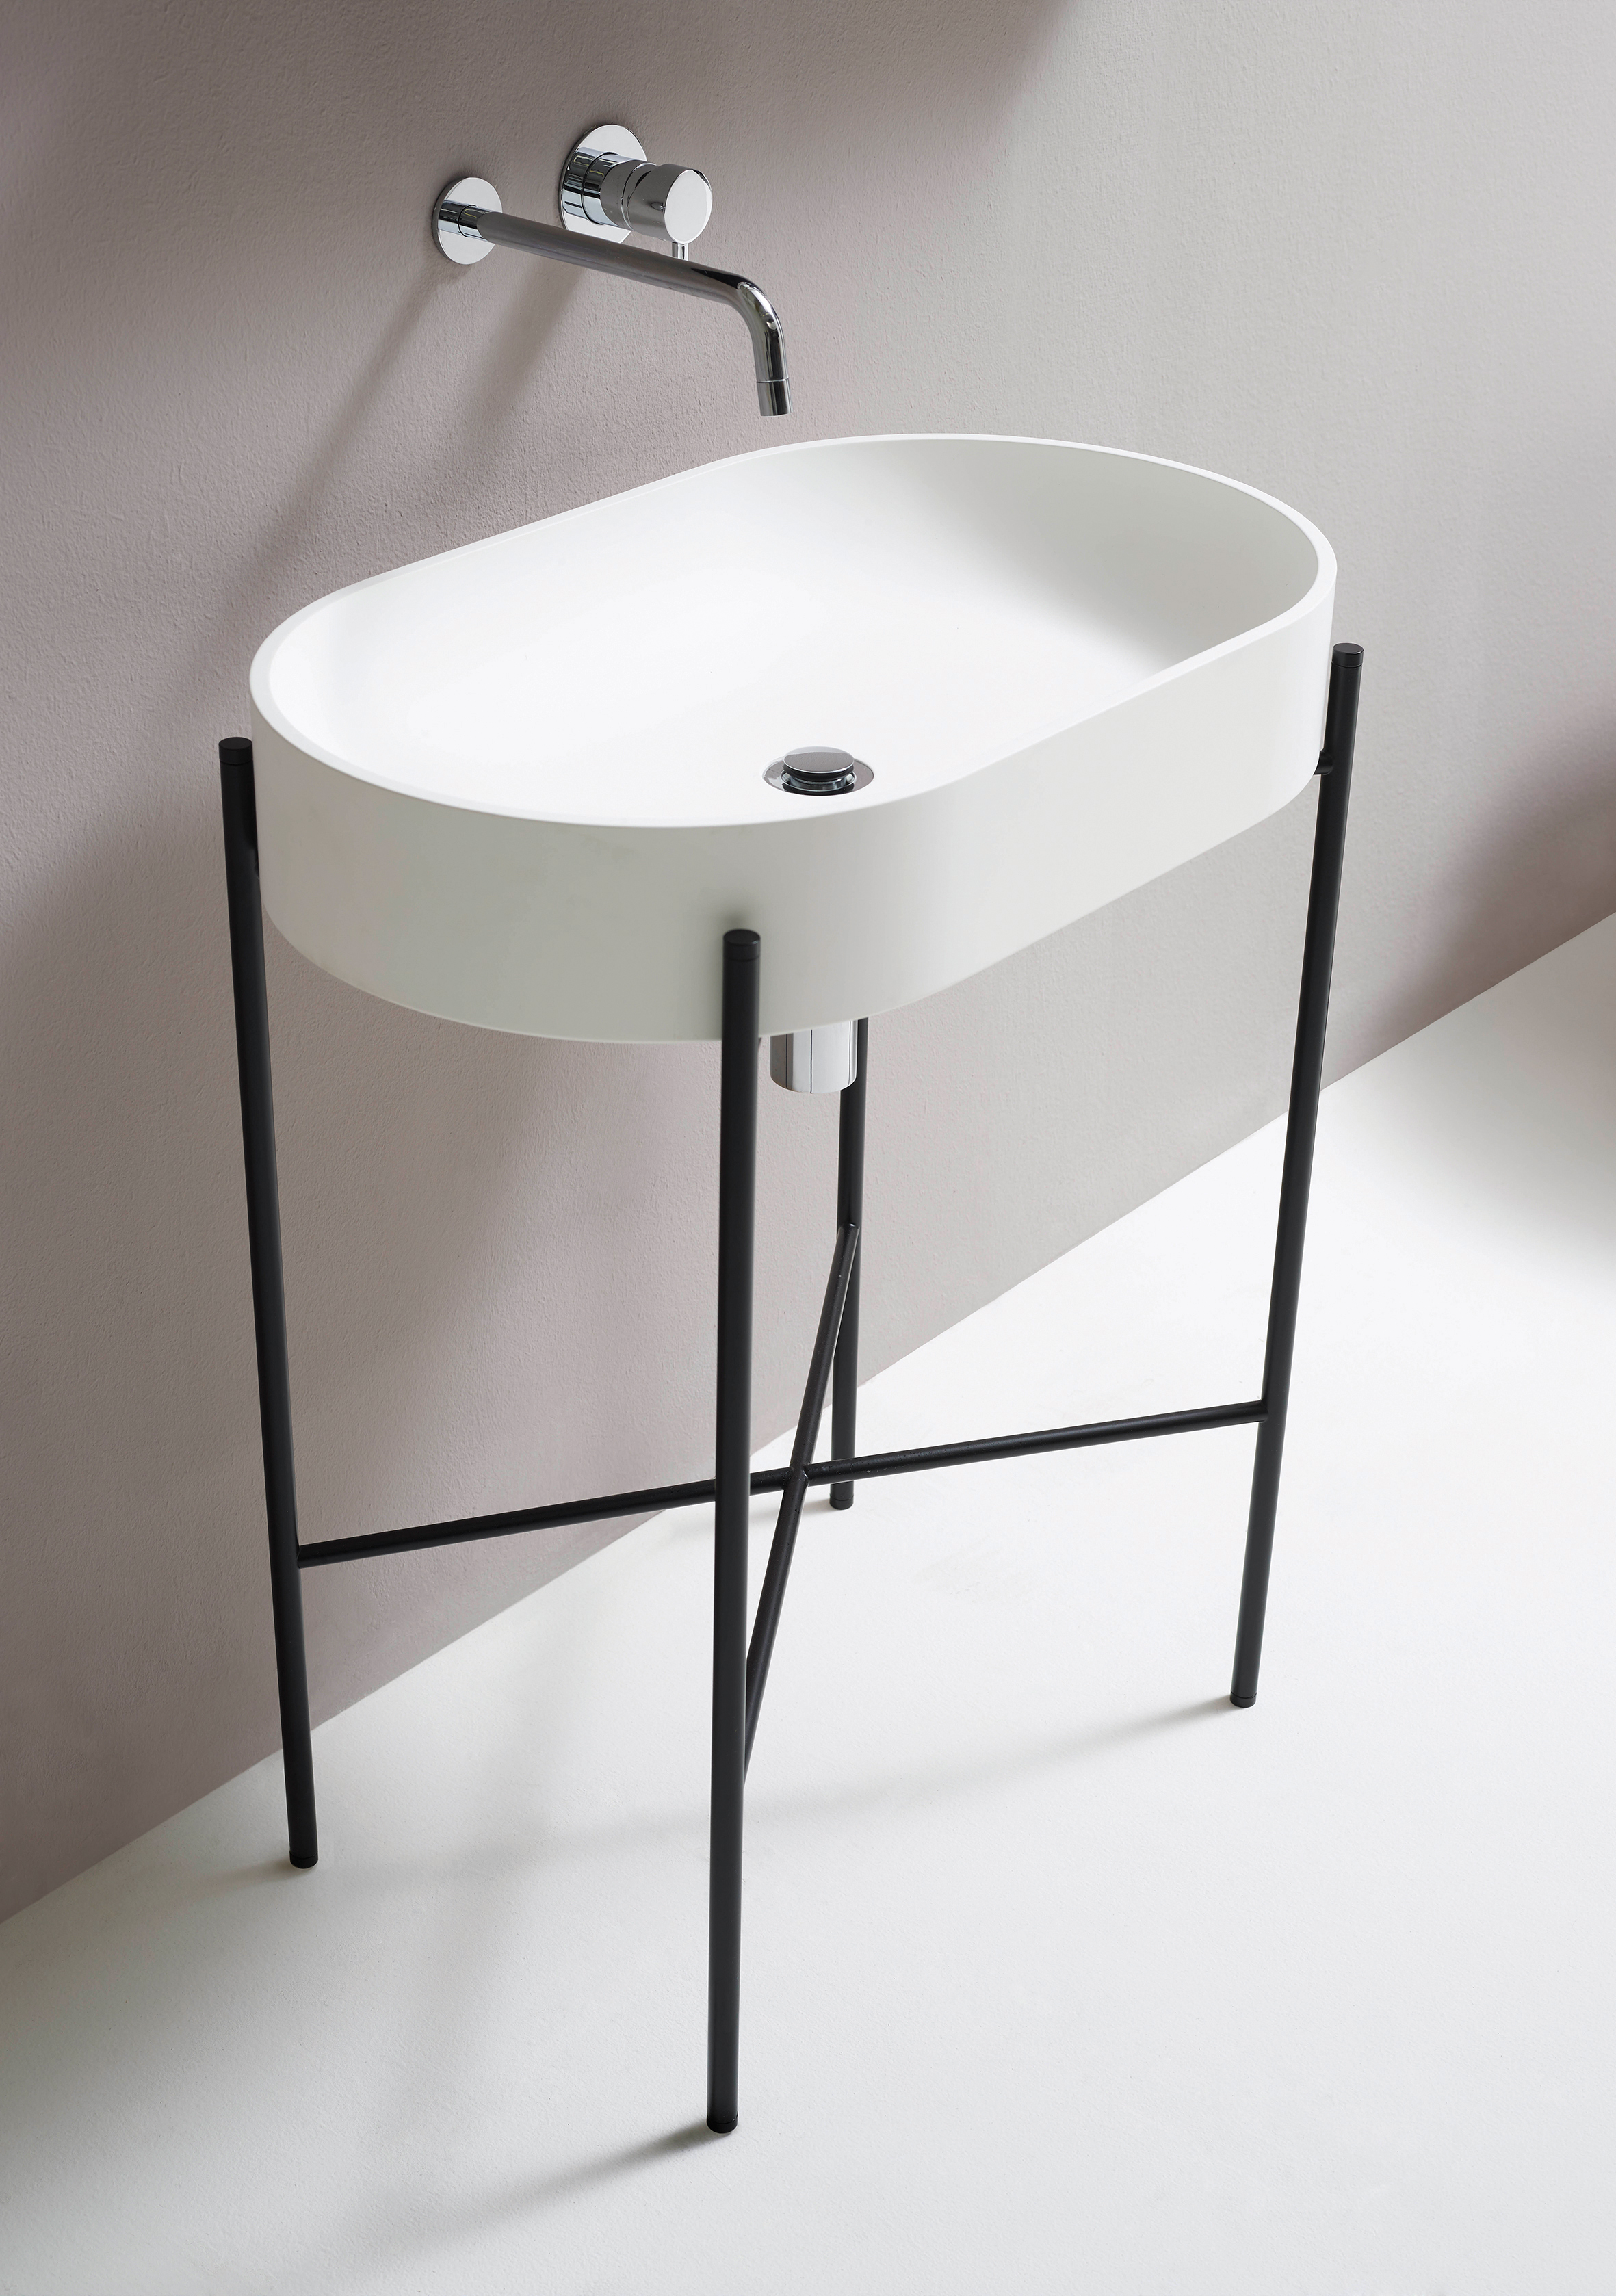 NORM-STAND bathroom basin